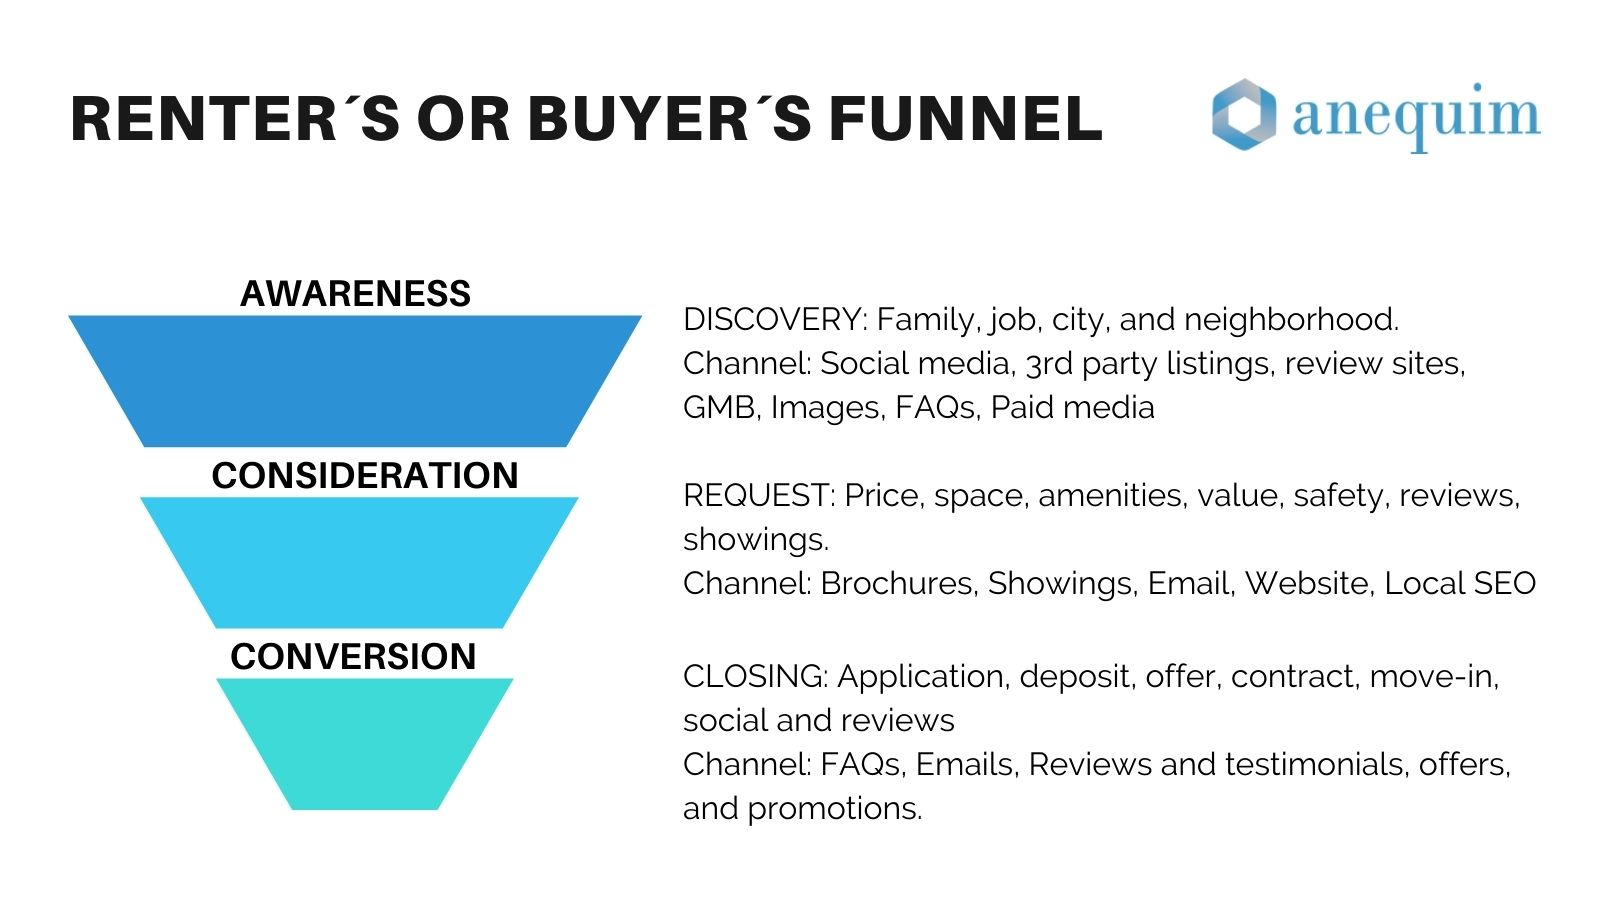 the renters funnel